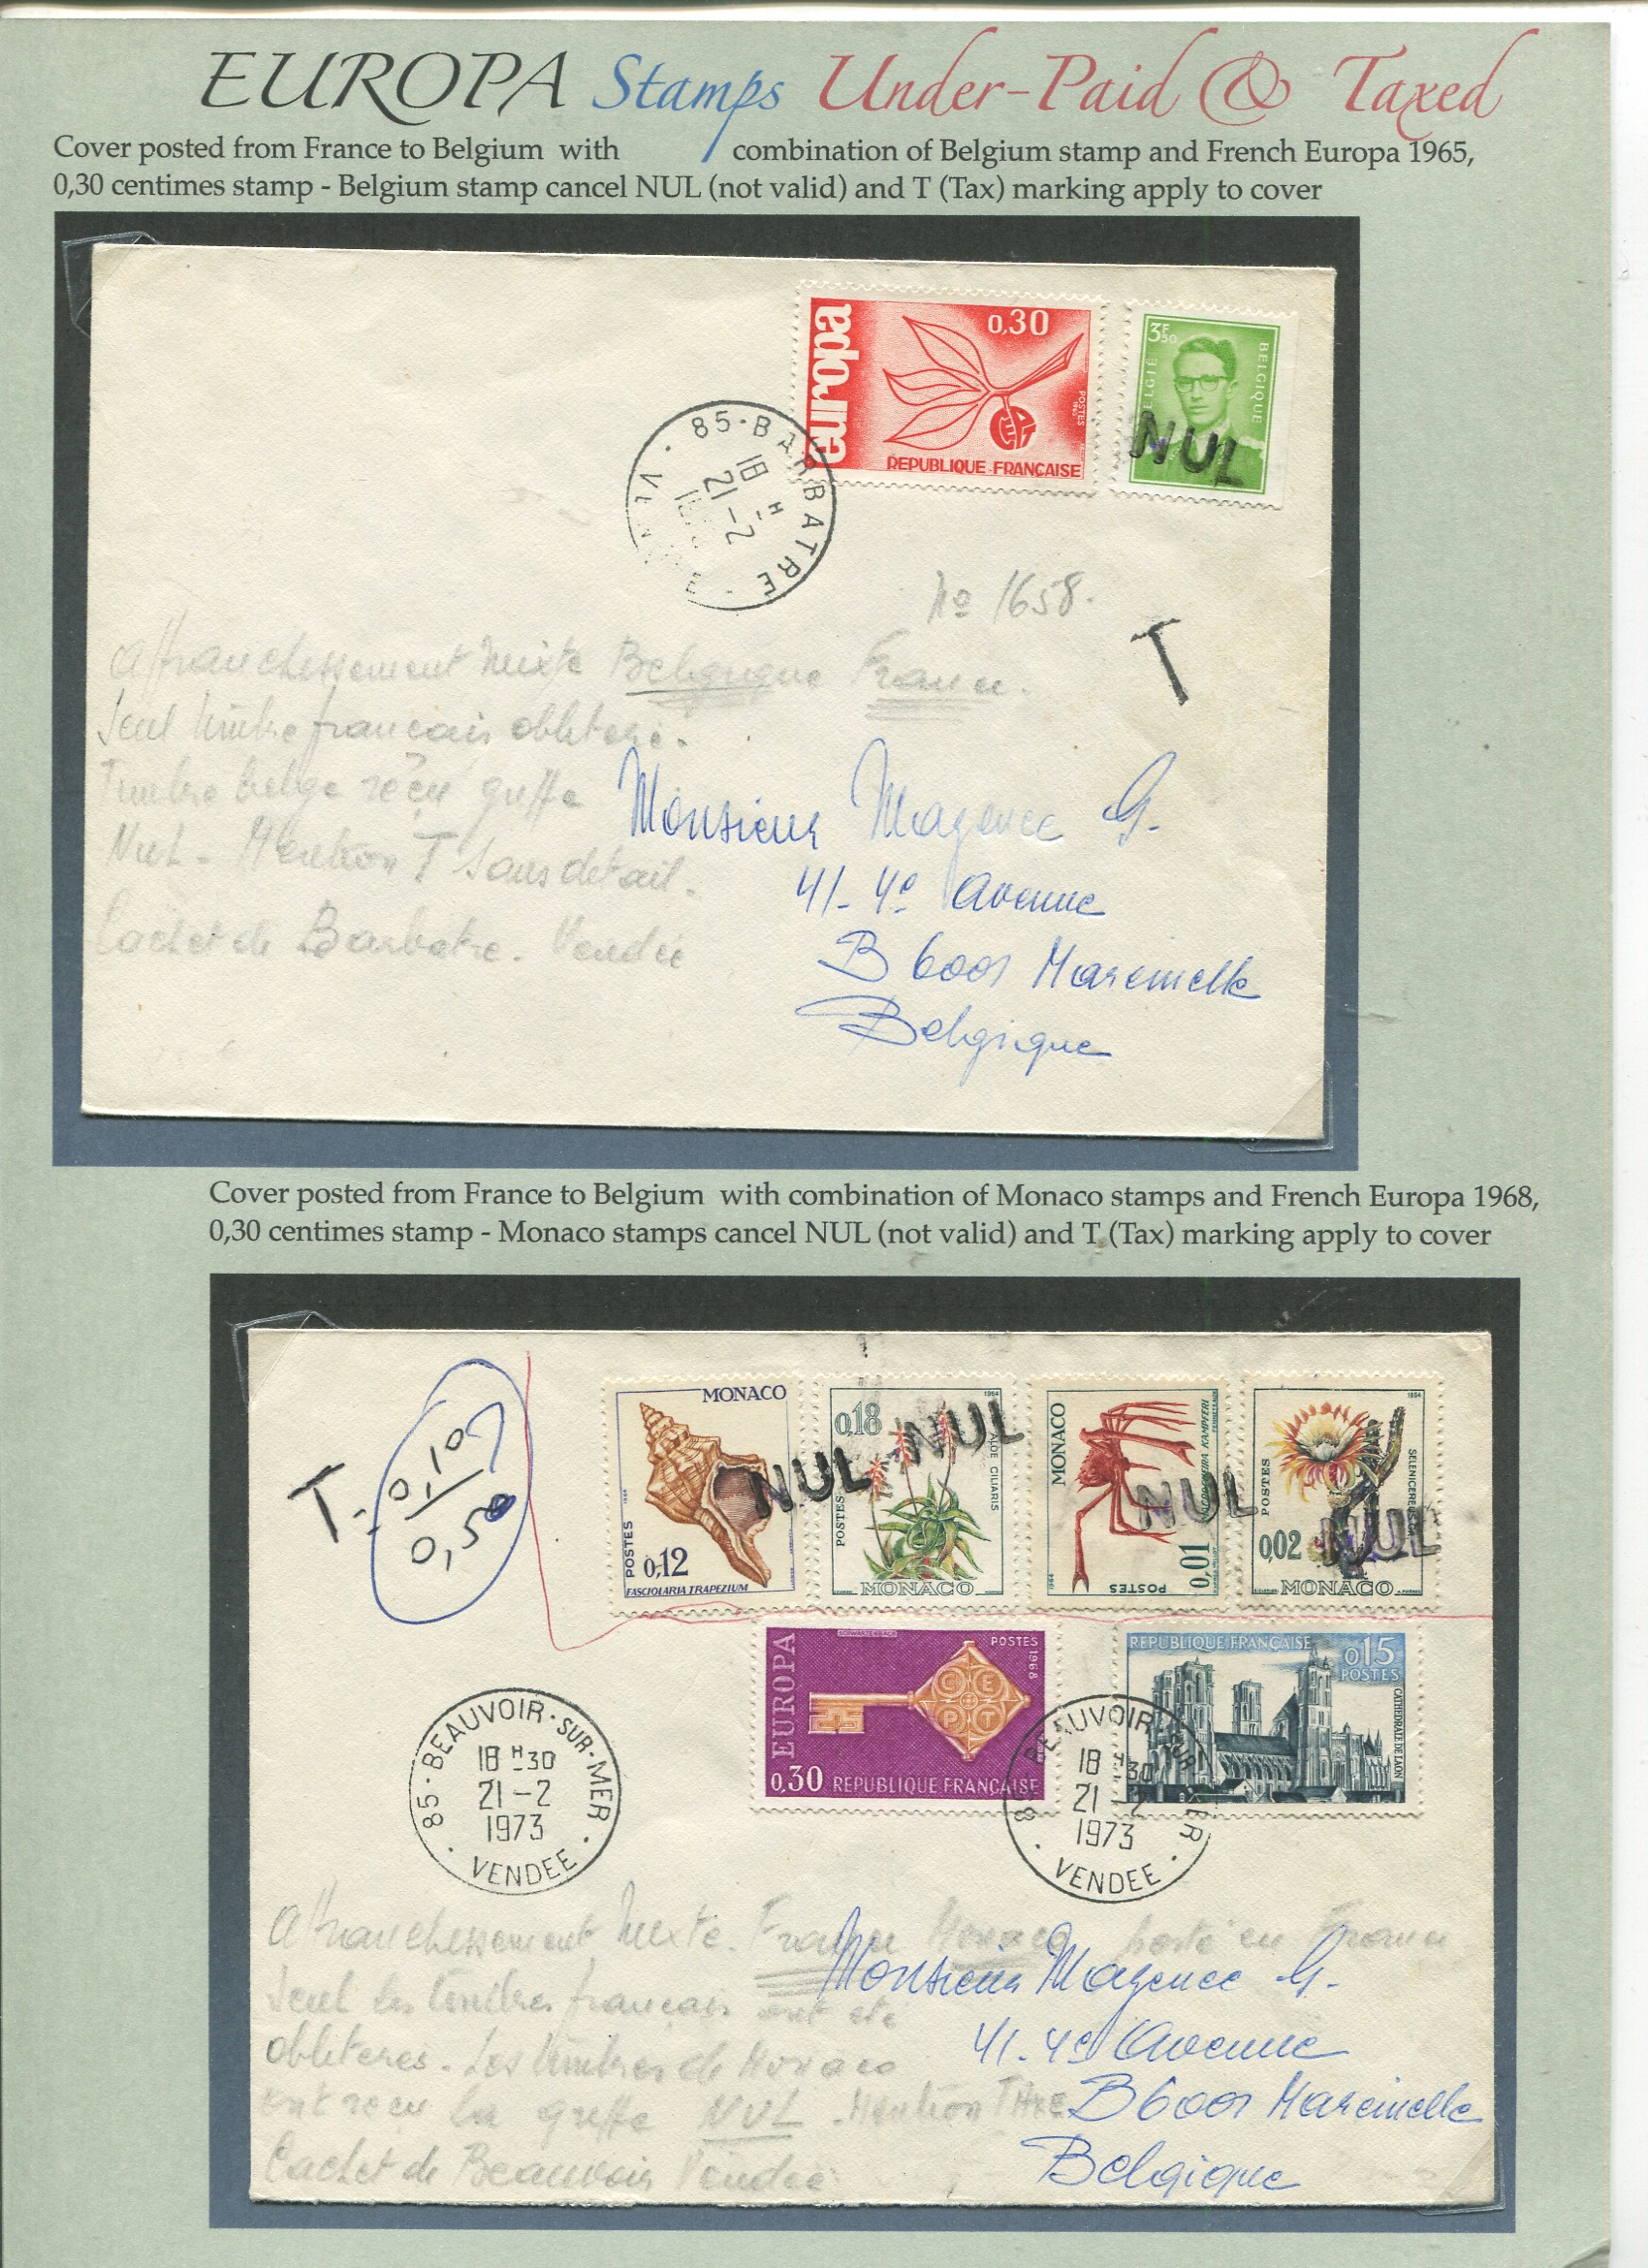 France illegal usage of stamps resulting in letter being taxed…